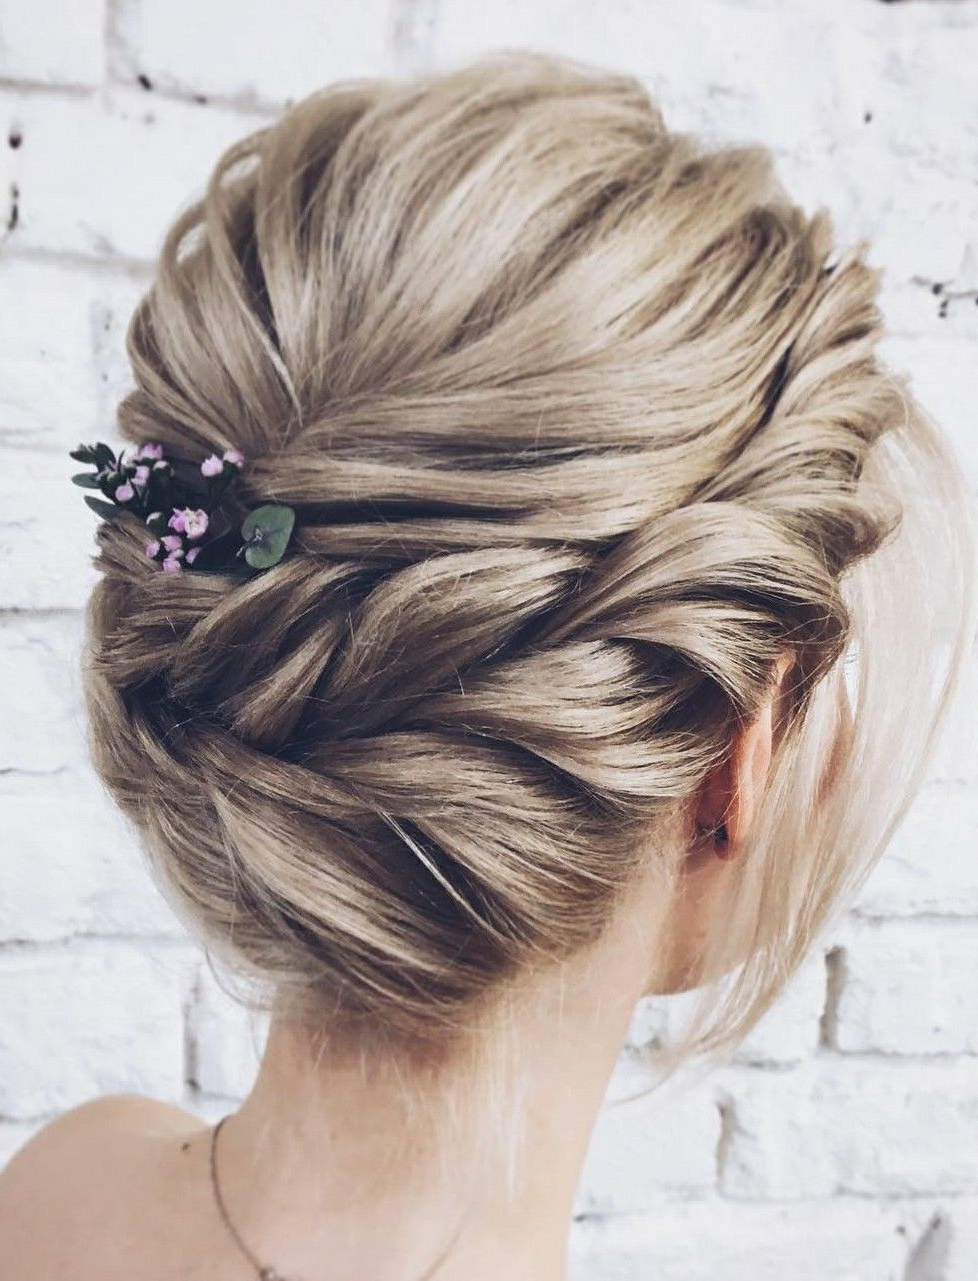 Wedding Hairstyles Intended For Best And Newest Braided Lavender Bridal Hairstyles (View 16 of 20)